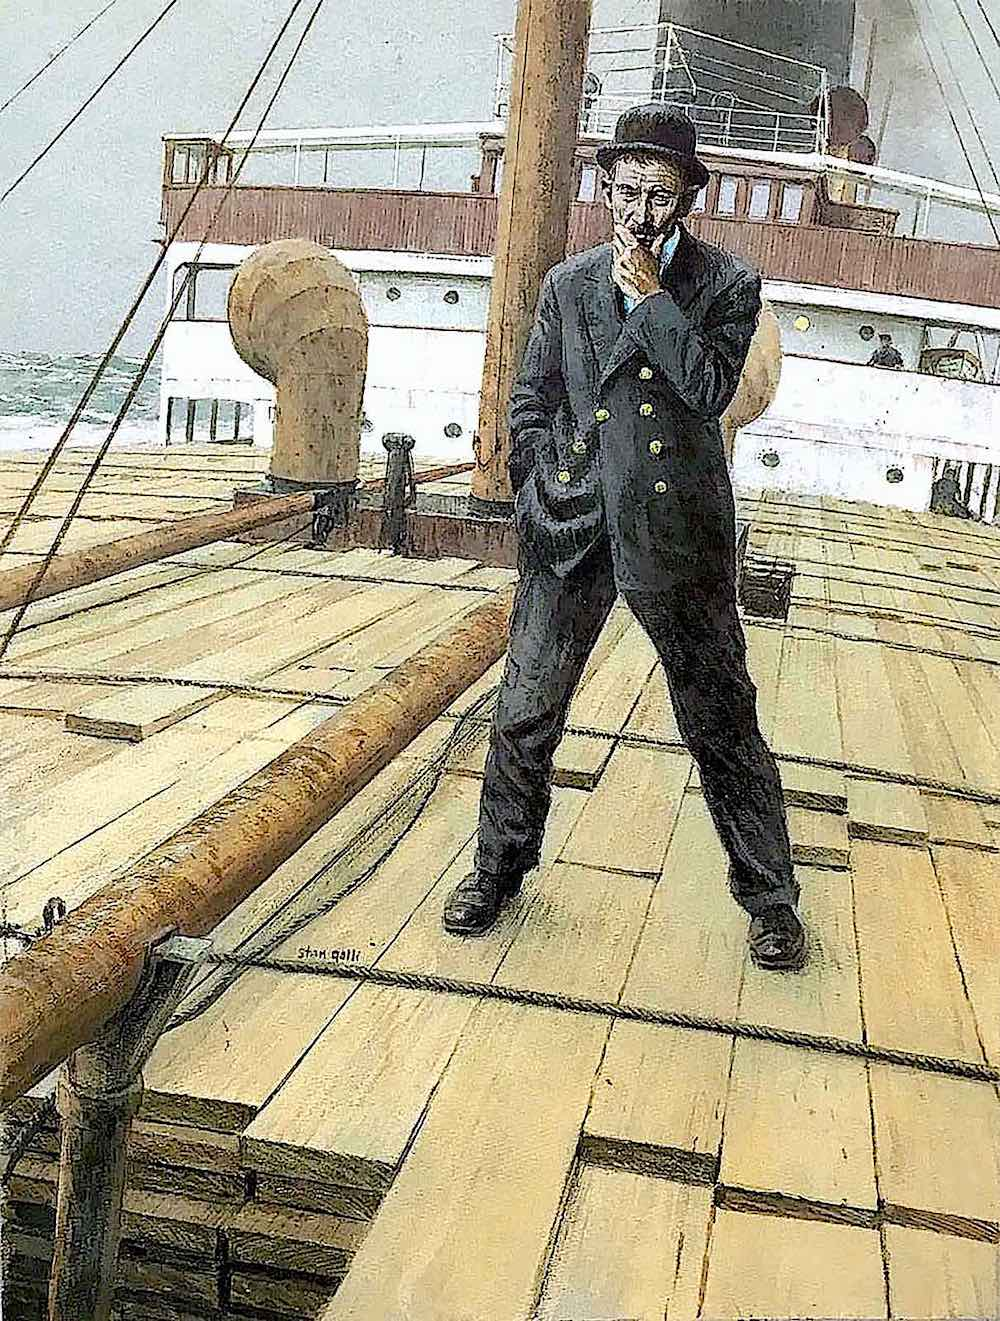 a Stan Galli illustration of a thinking man on a slanted ship deck